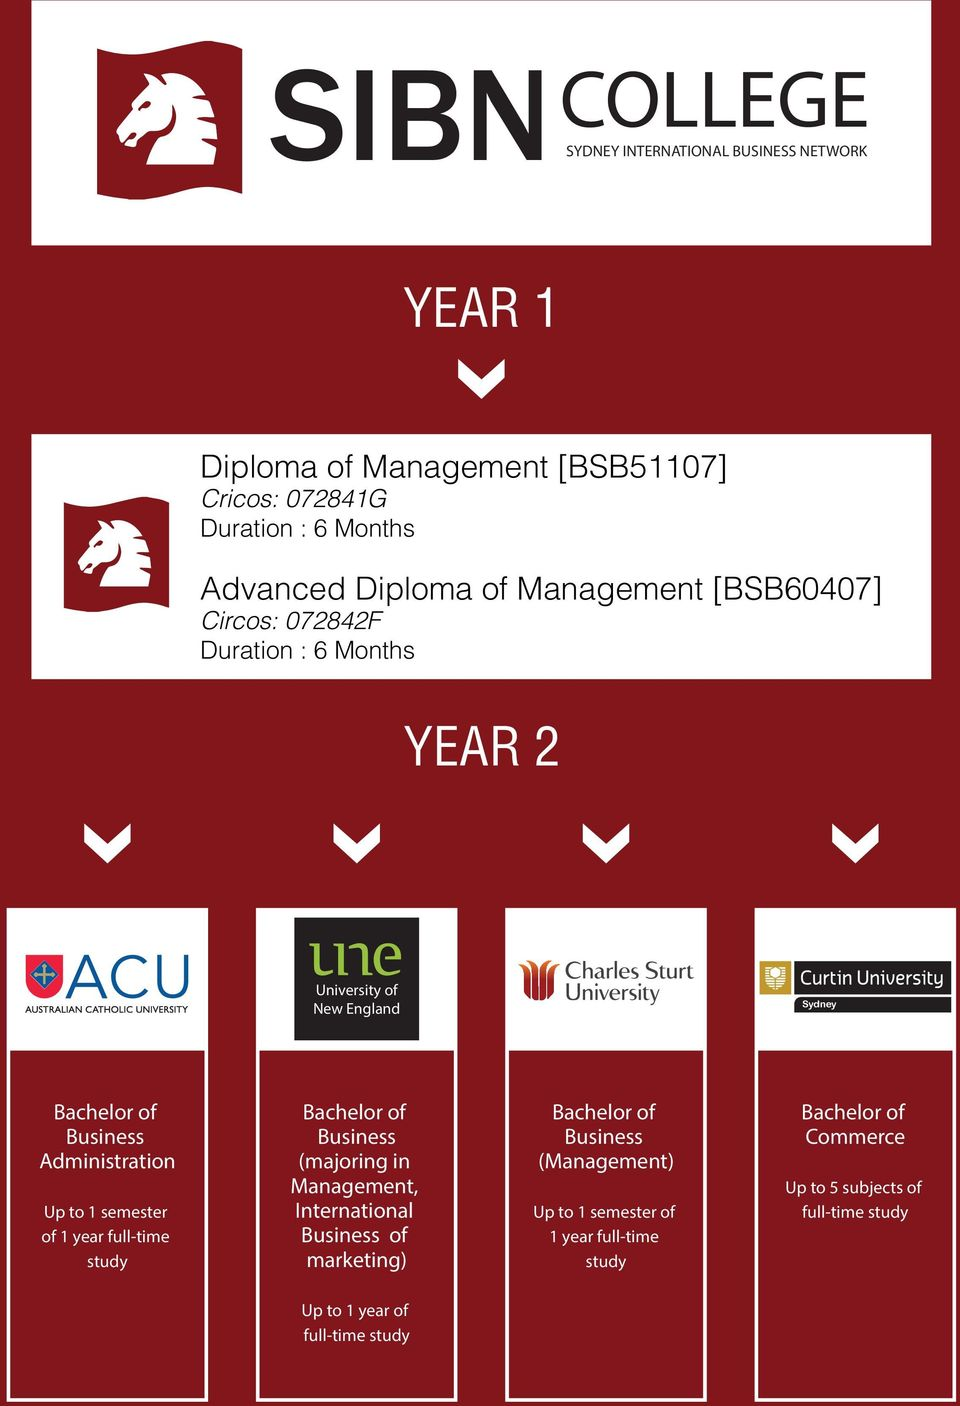 Administration Up to 1 semester of 1 year full-time study Bachelor of Business (majoring in Management, International Business of marketing)